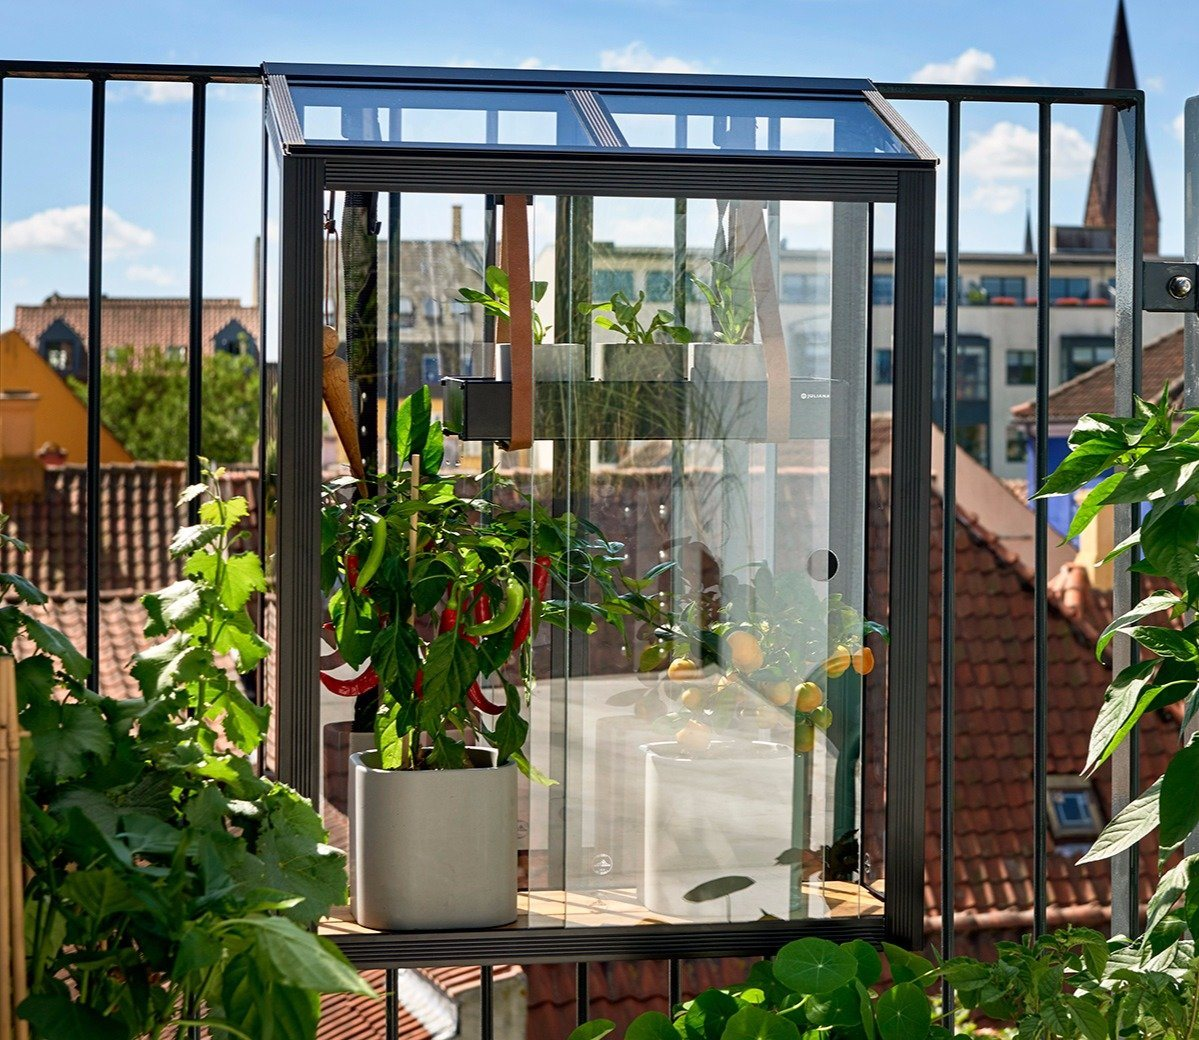 juliana-balcony-greenhouse-eb61b2b037c2fe304d2a28be749e131d_original.jpg